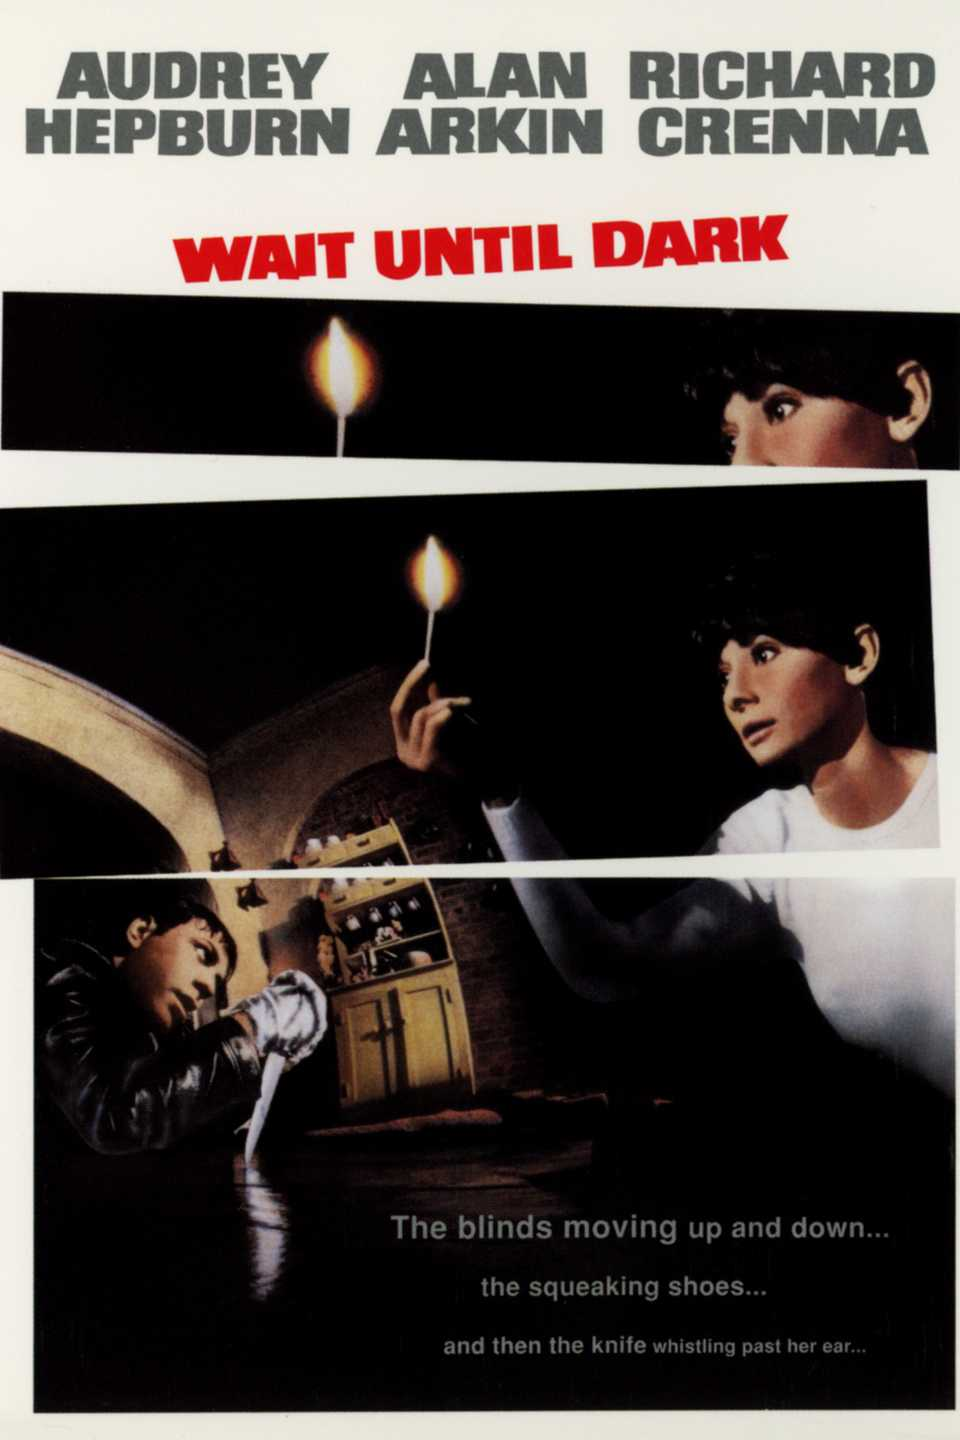 Wait until dark - Audrey Hepburn Movies